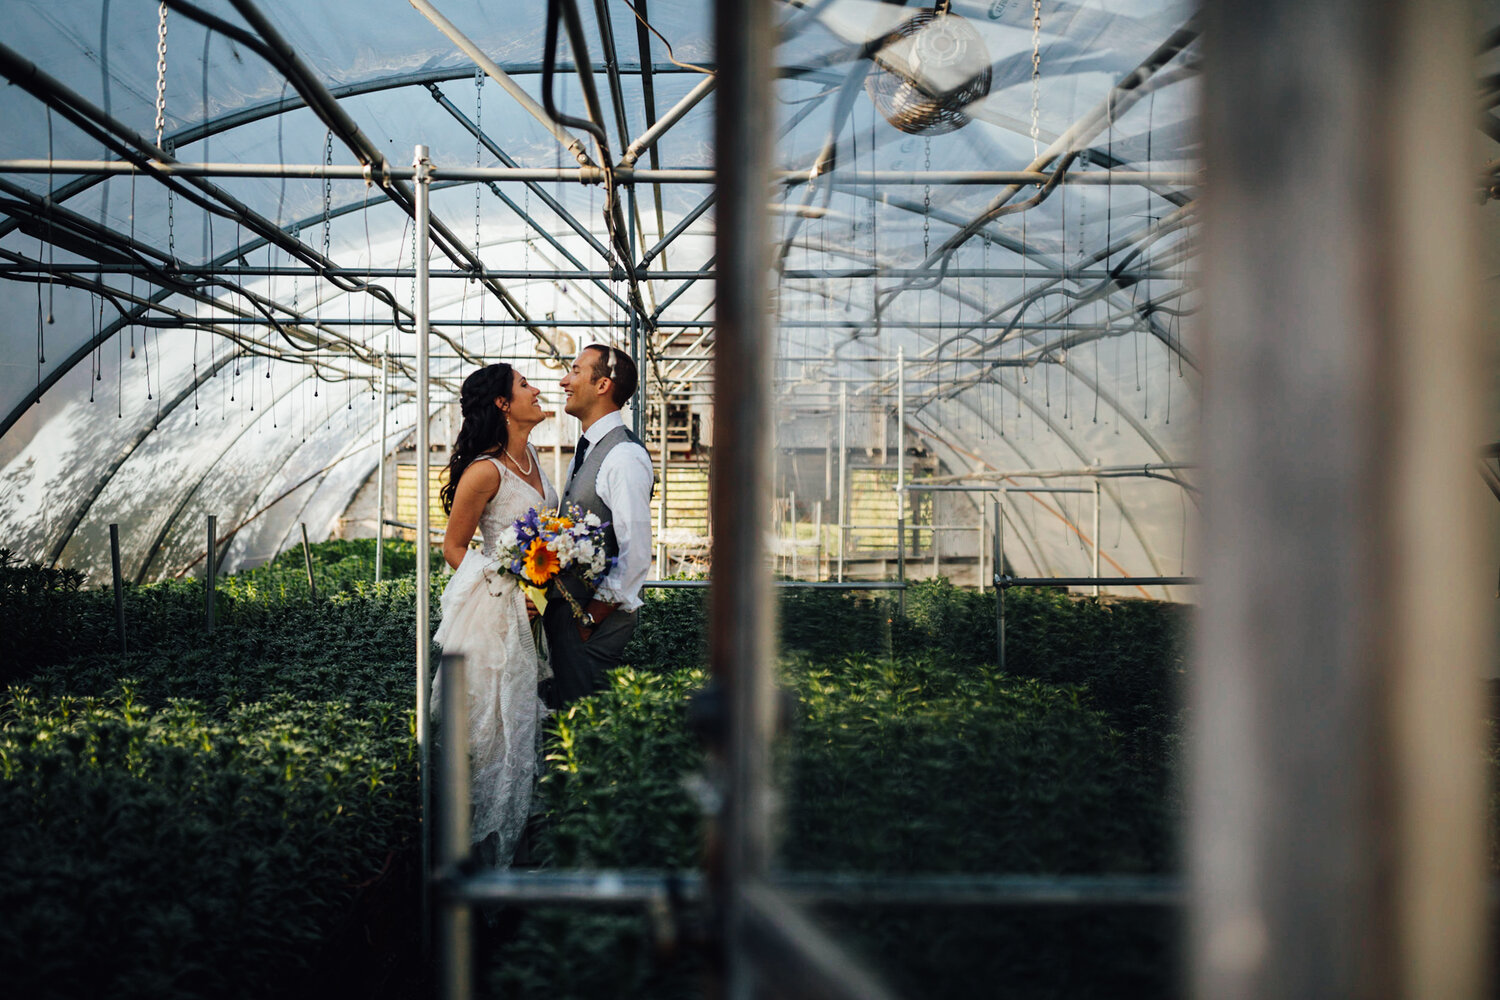 Sarah + Lewis enjoying a moment in one of Pasture of Plenty's greenhouses—i.e. the moment when all my farm wedding dreams came true.